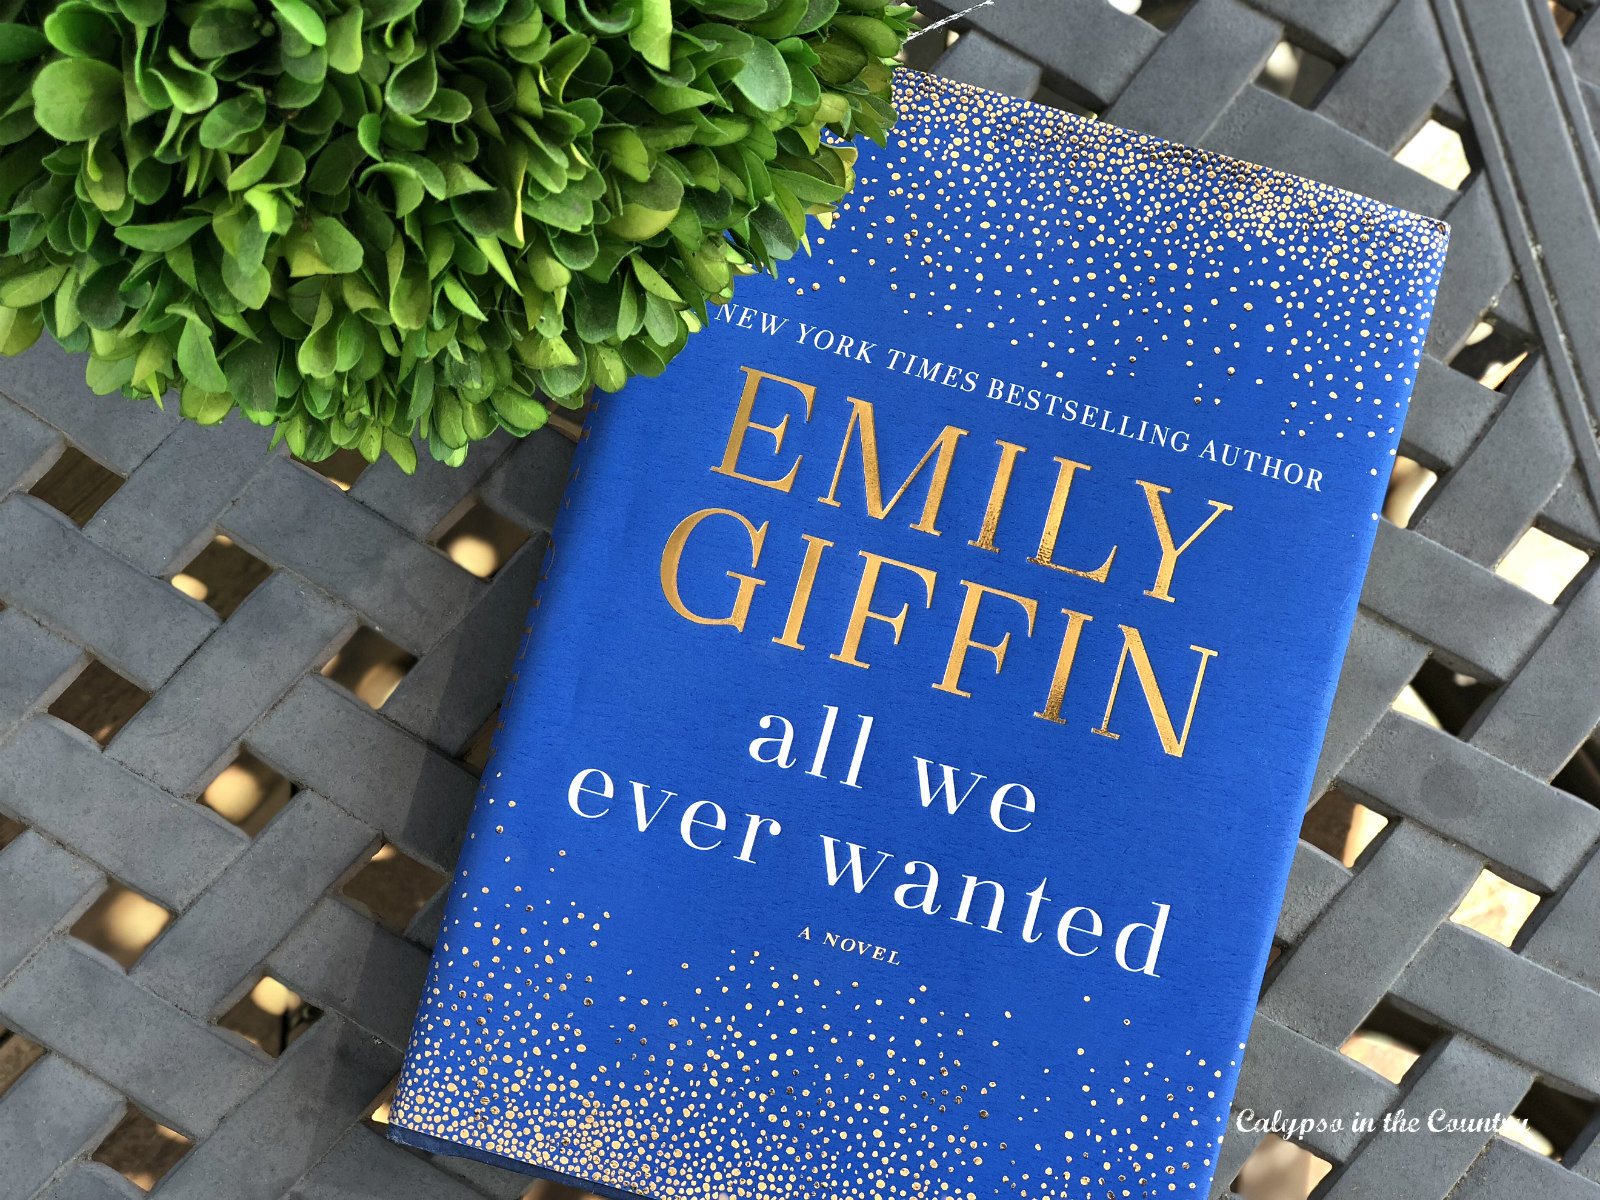 Emily Giffin - All We Ever Wanted Review